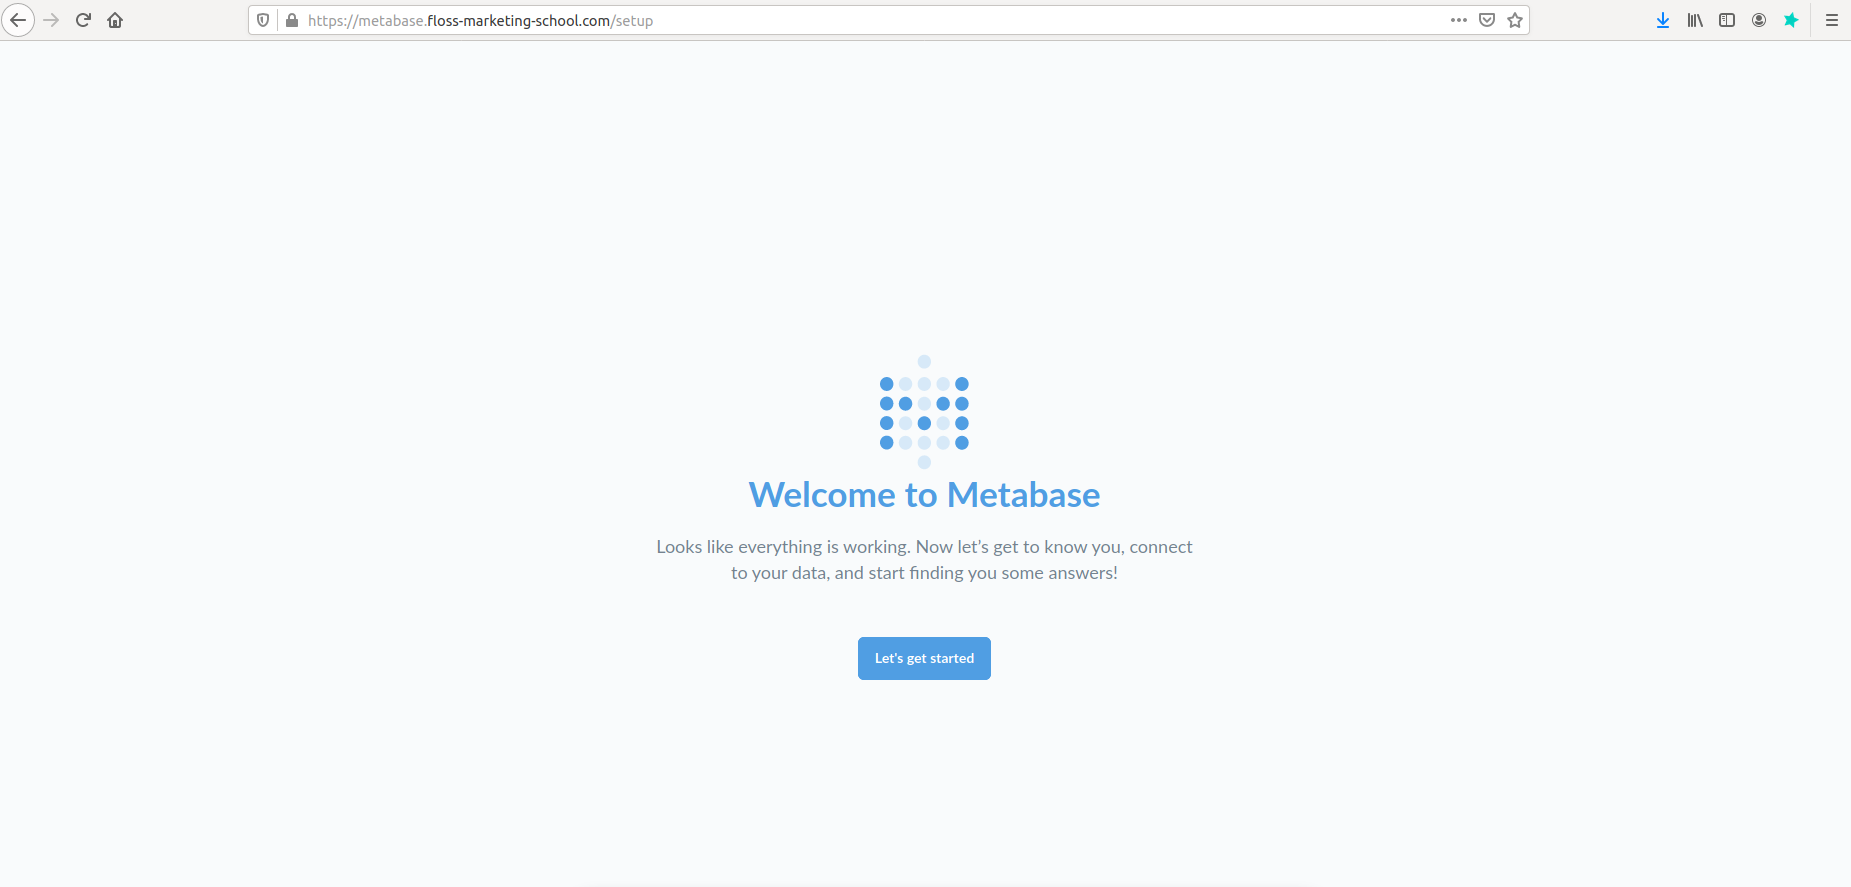 The setup GUI page of Metabase